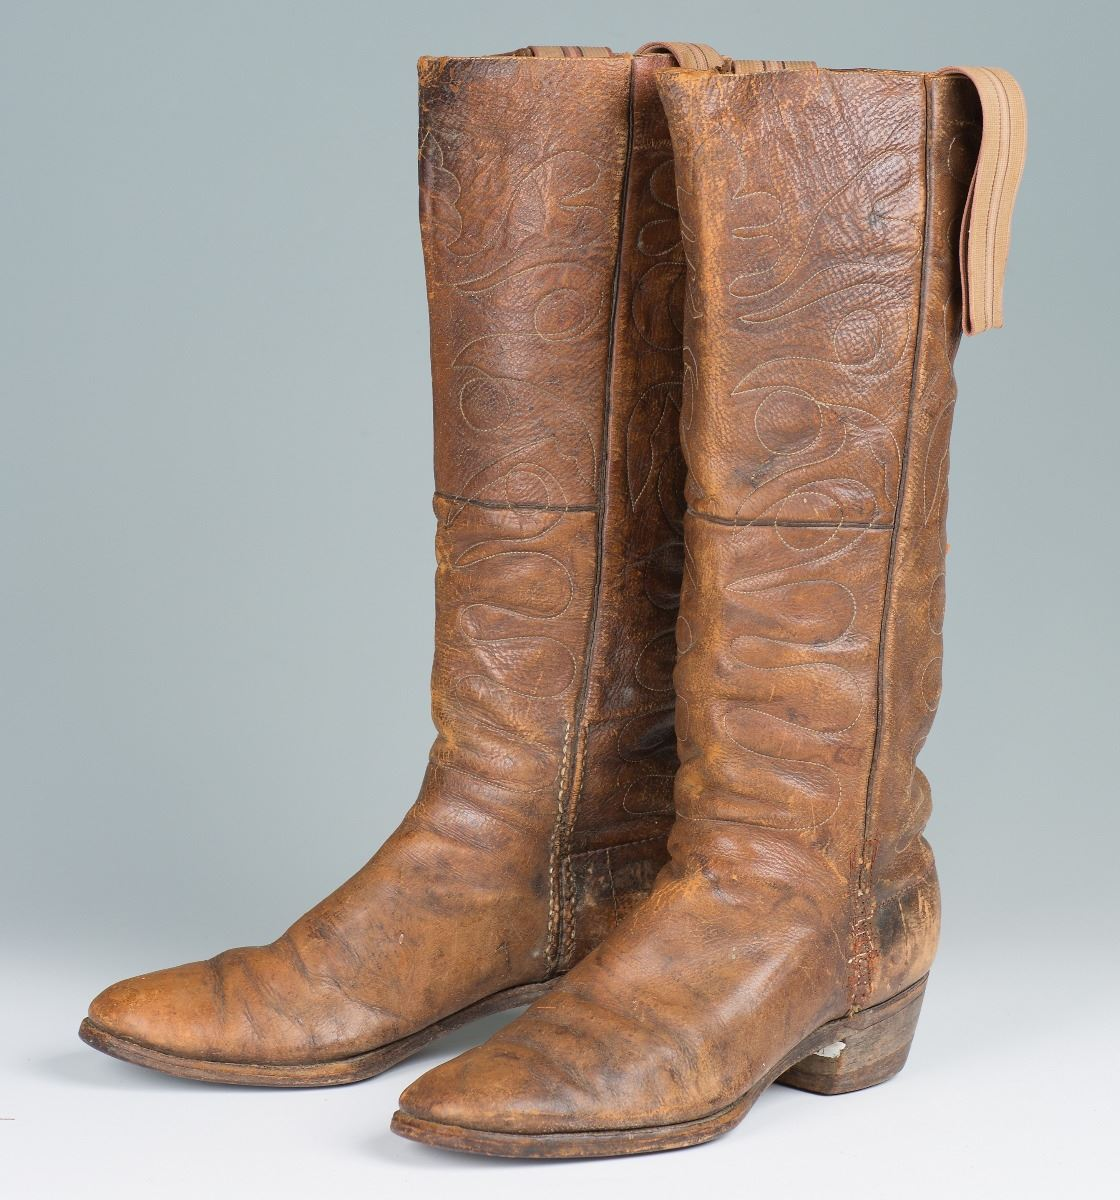 Pair of Cowboy Stovepipe Boots